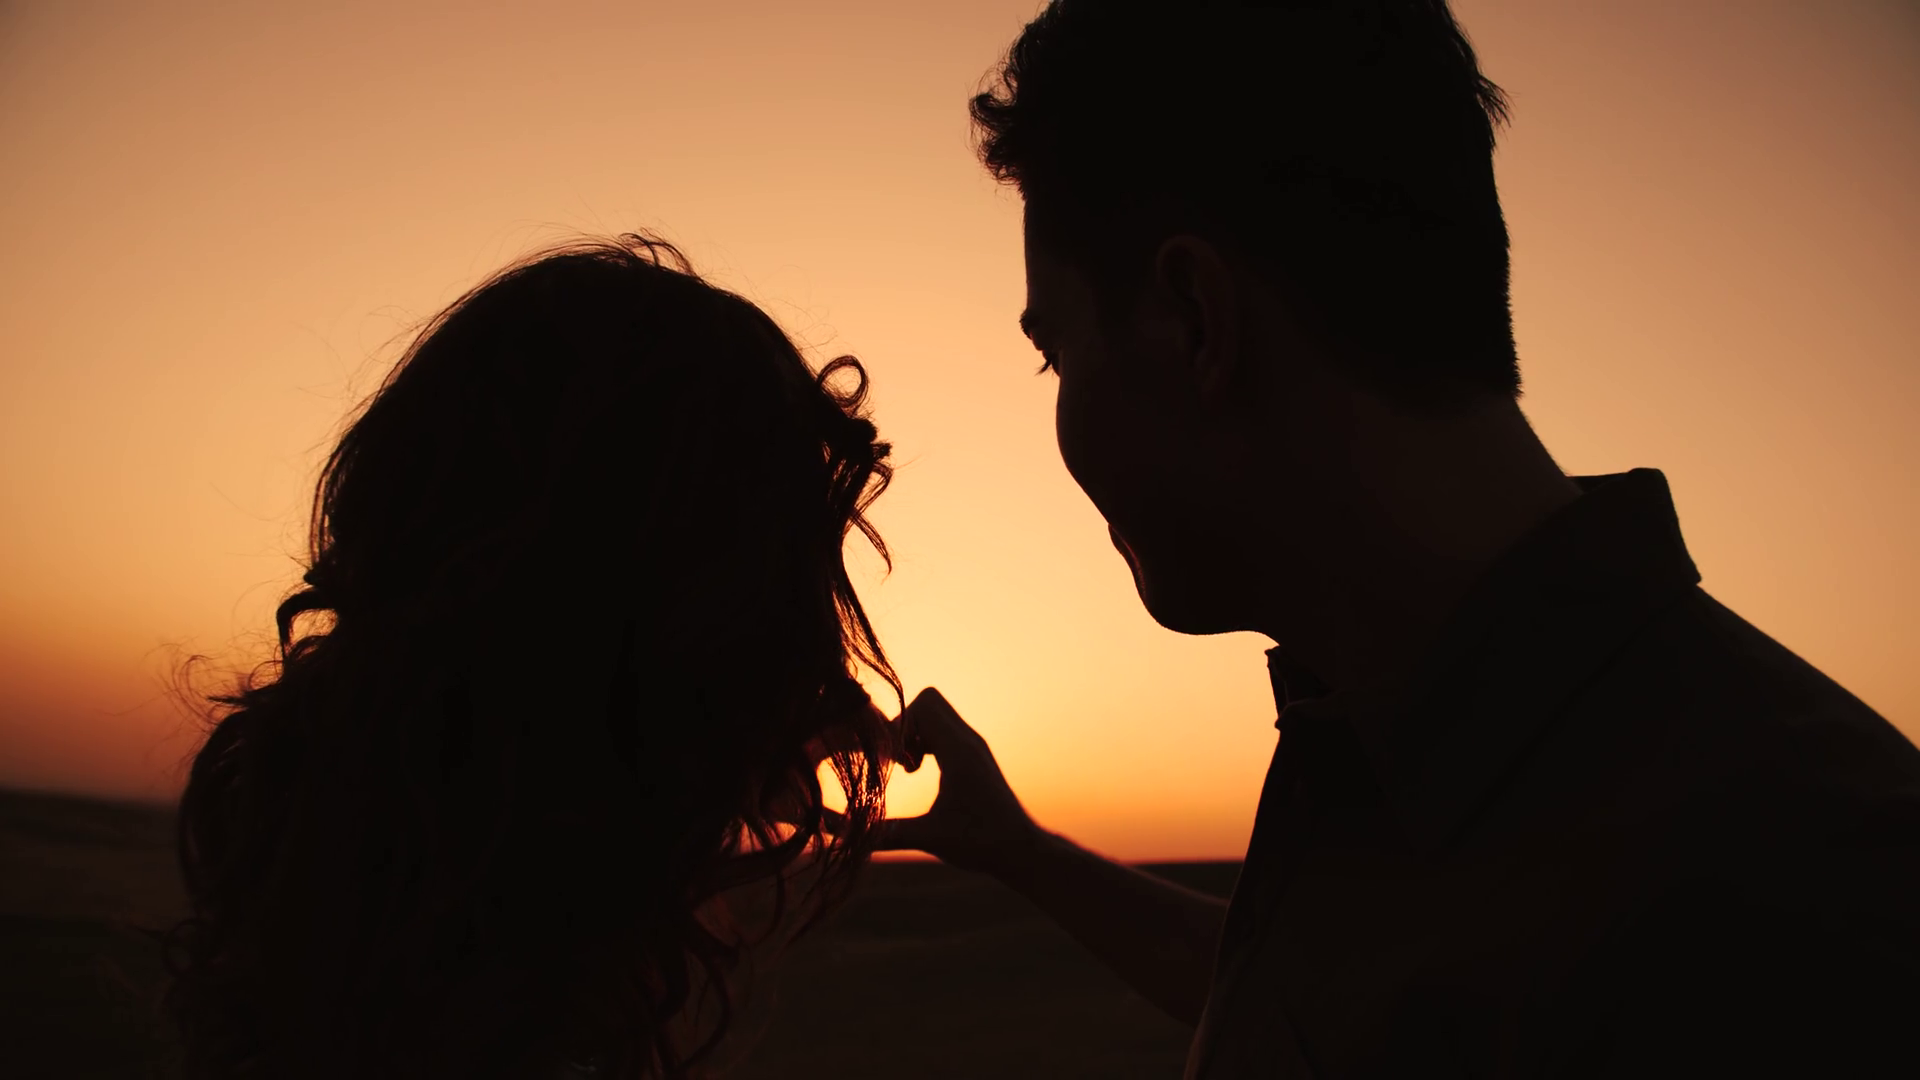 sun-in-hands-happy-couple-making-shape-of-heart-beautiful-sunset-on-horizon-love-nature-vacation-hope-freedom-hippie-generation b7gf5ppa thumbnail-full01